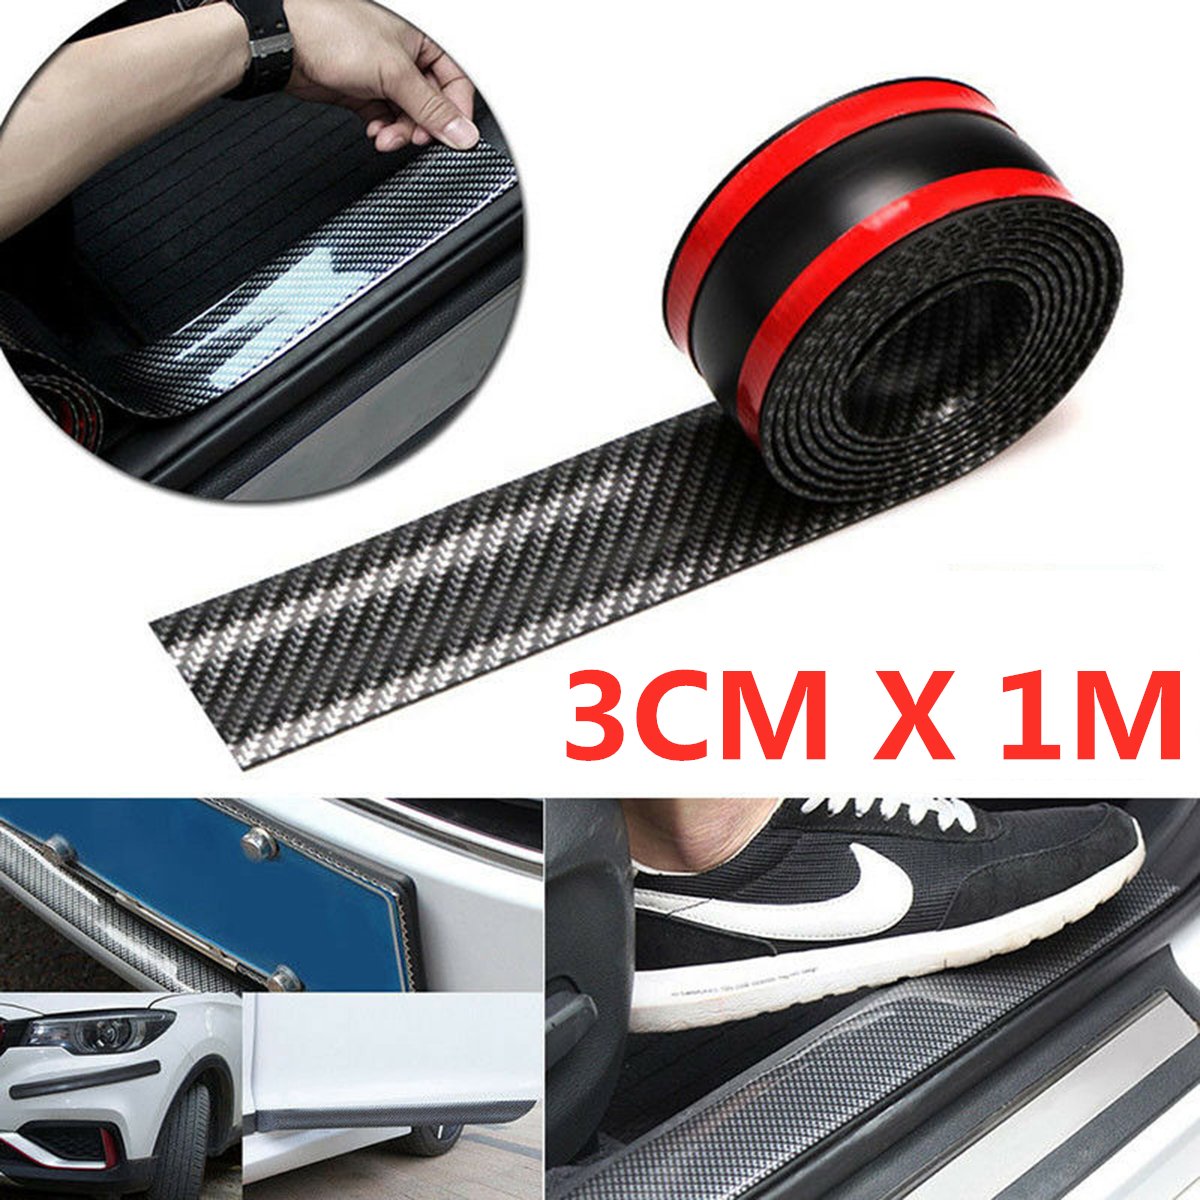 Car 3CM*1M Carbon Fiber Rubber Edge Guard Strip Door Sill Protector Accessories